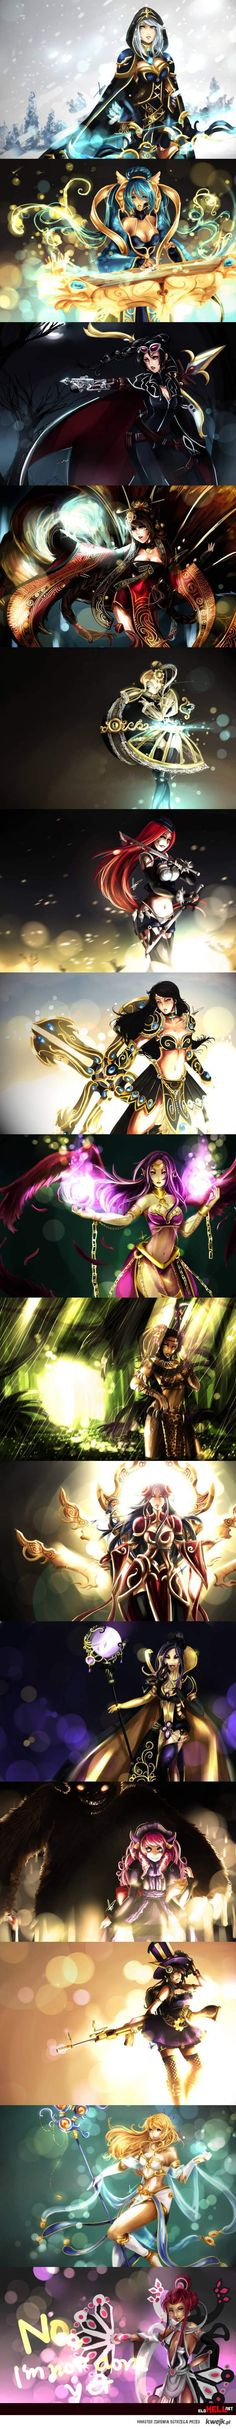 #Riot or #Rito whatever you are now, please use these as character update references, these are beautiful and well done. Their uniqueness is really shown in these.